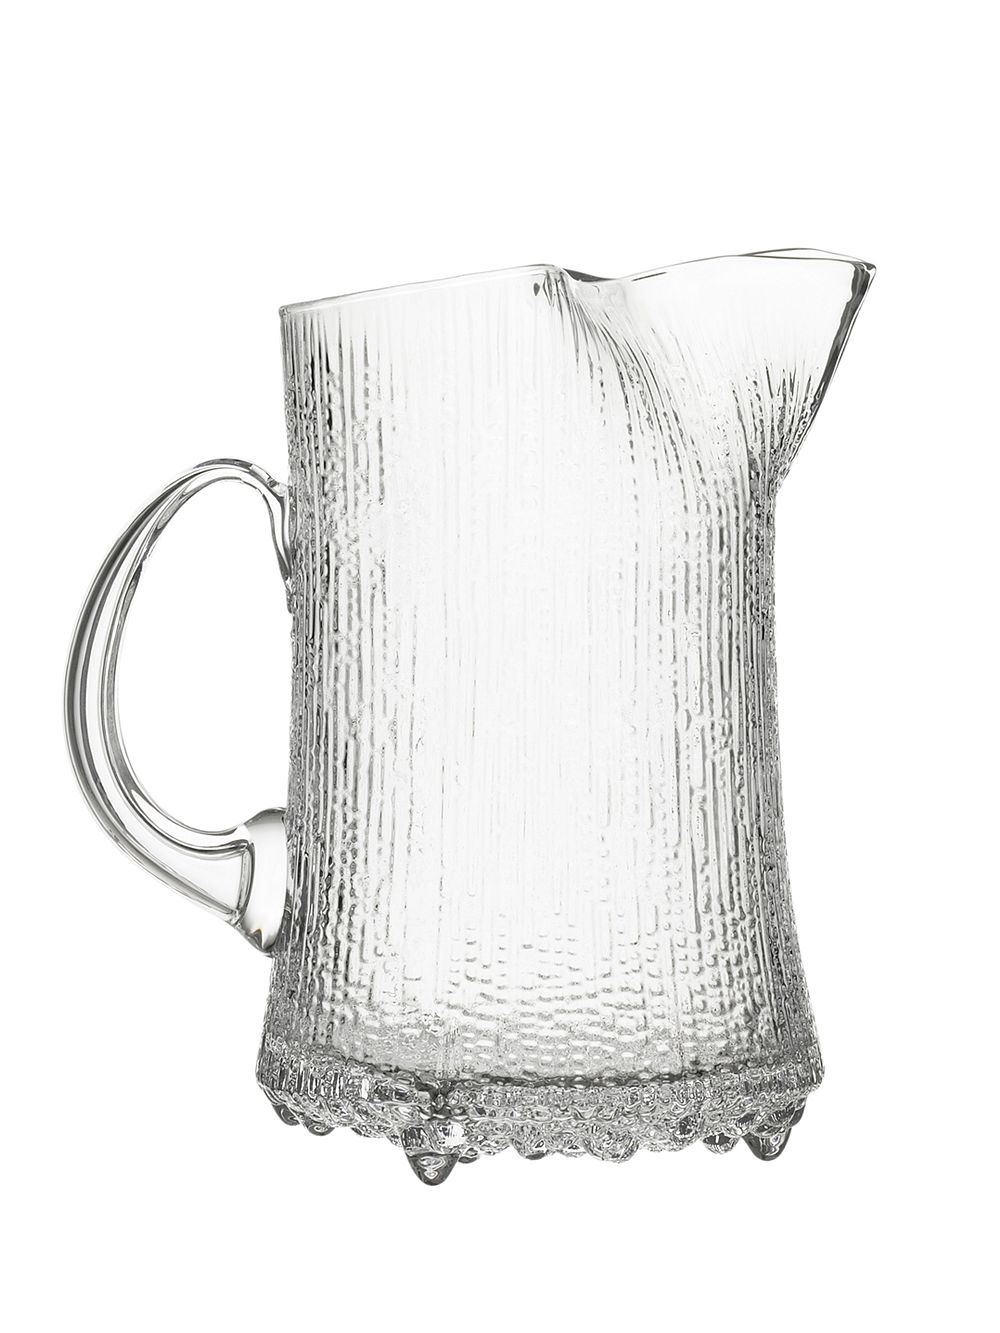 Iittala's Ultima Thule pitcher